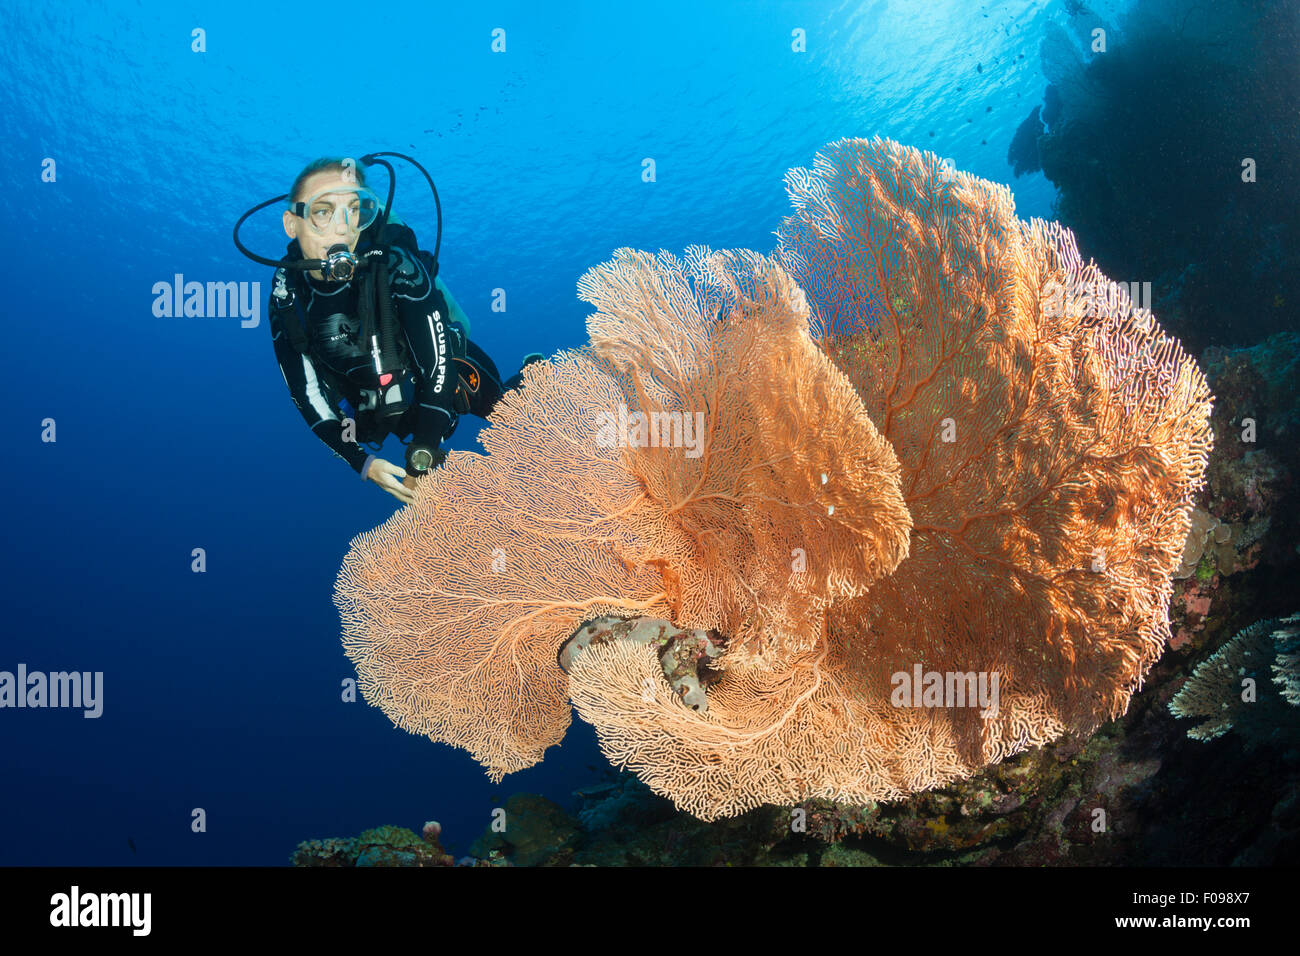 Scuba Diver over Coral Reef, Russell Islands, Solomon Islands - Stock Image